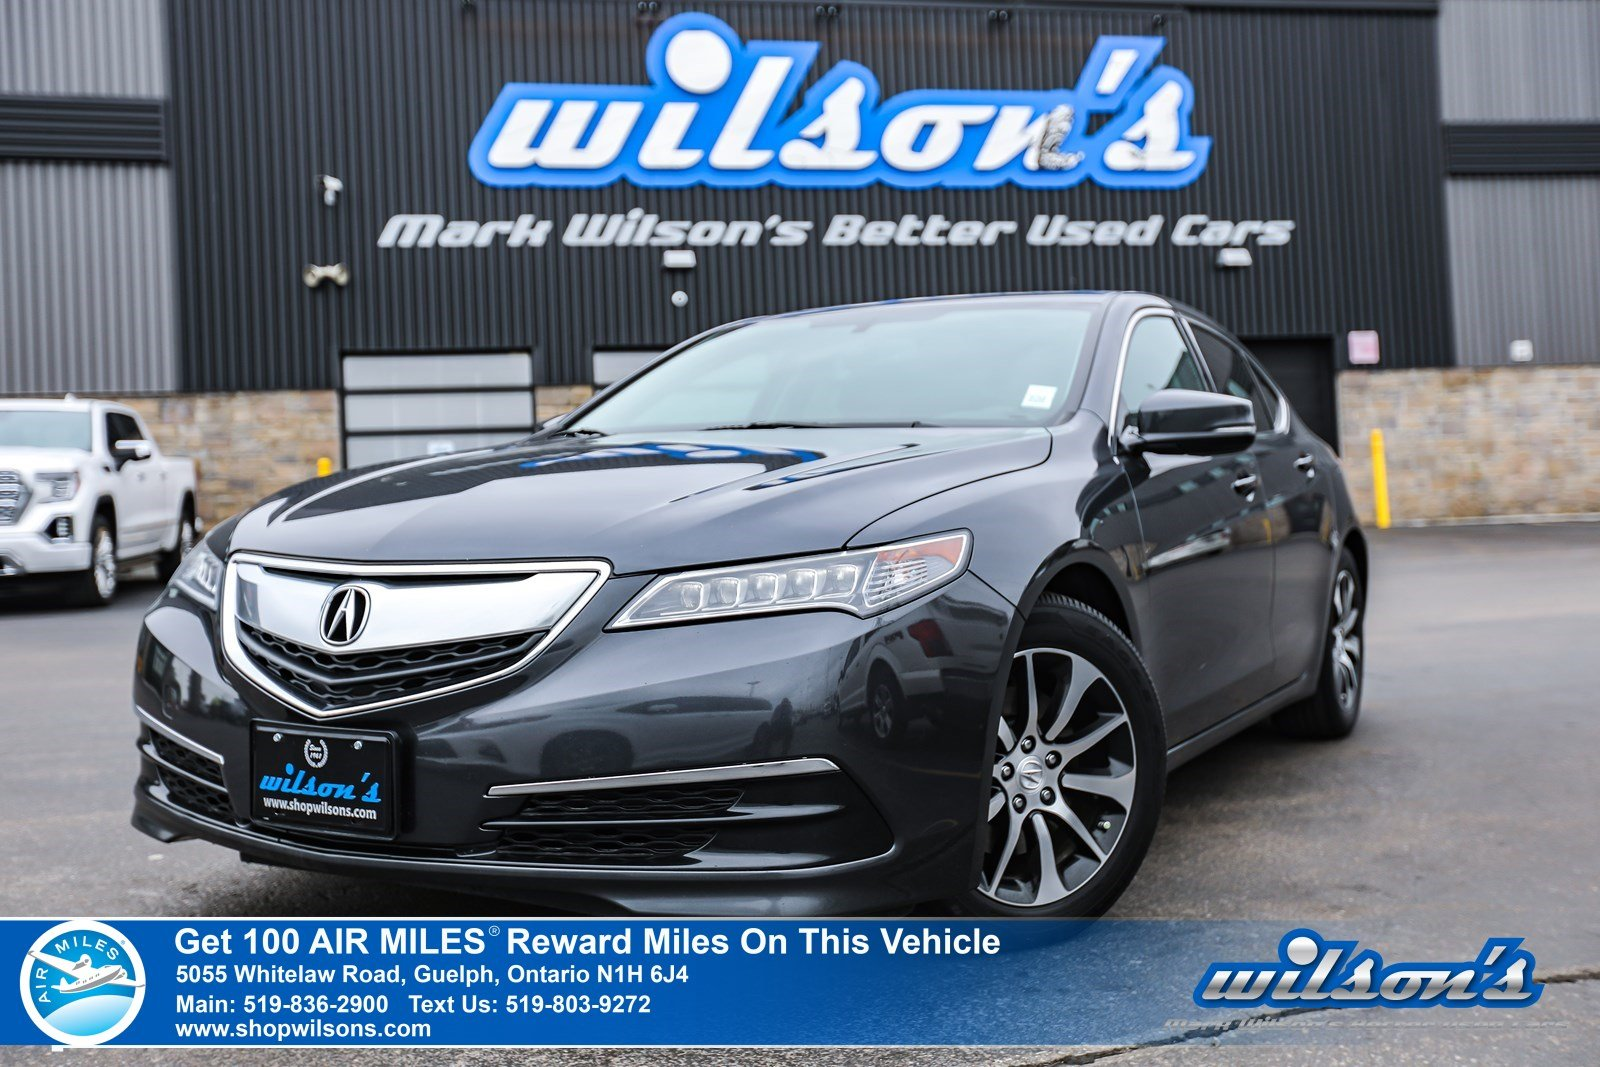 Certified Pre-Owned 2015 Acura TLX - Leather, Sunroof, Rear Camera, Bluetooth, Heated Seats, Alloy Wheels and more!